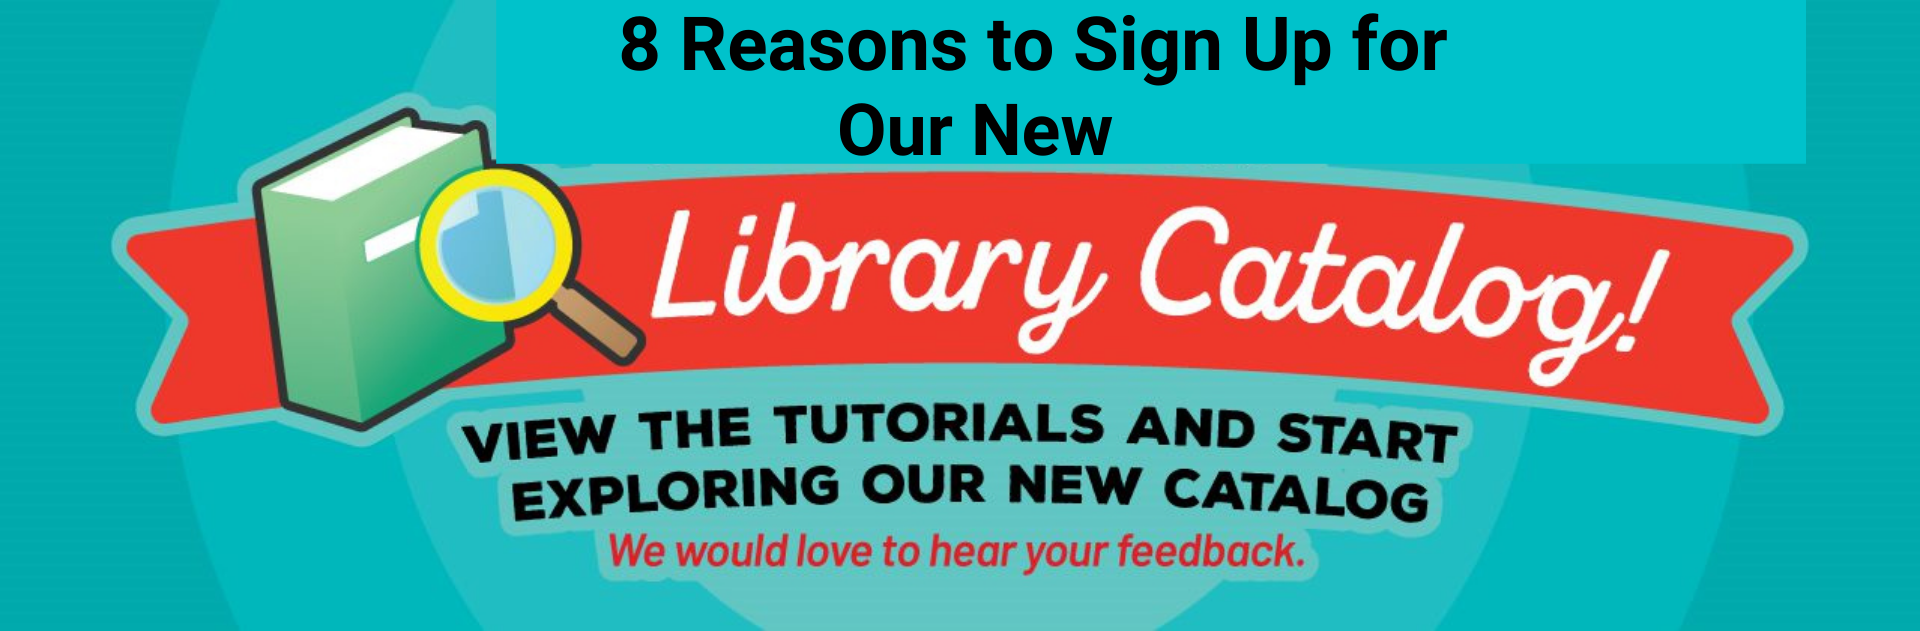 8 Reasons to Sign Up for Our New Library Catalog